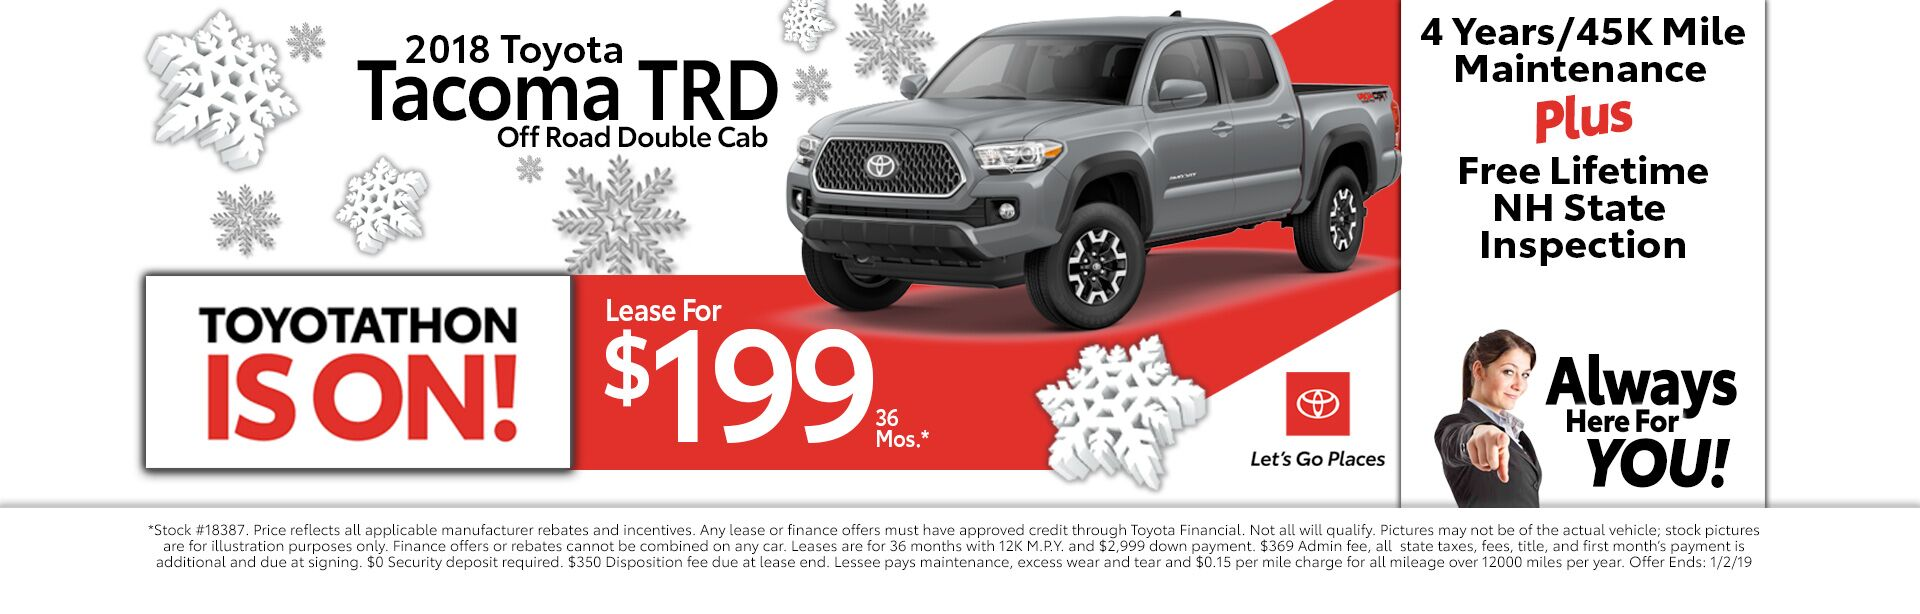 2018 Toyota Tacoma TRD for as low as $199 a month for 36 months